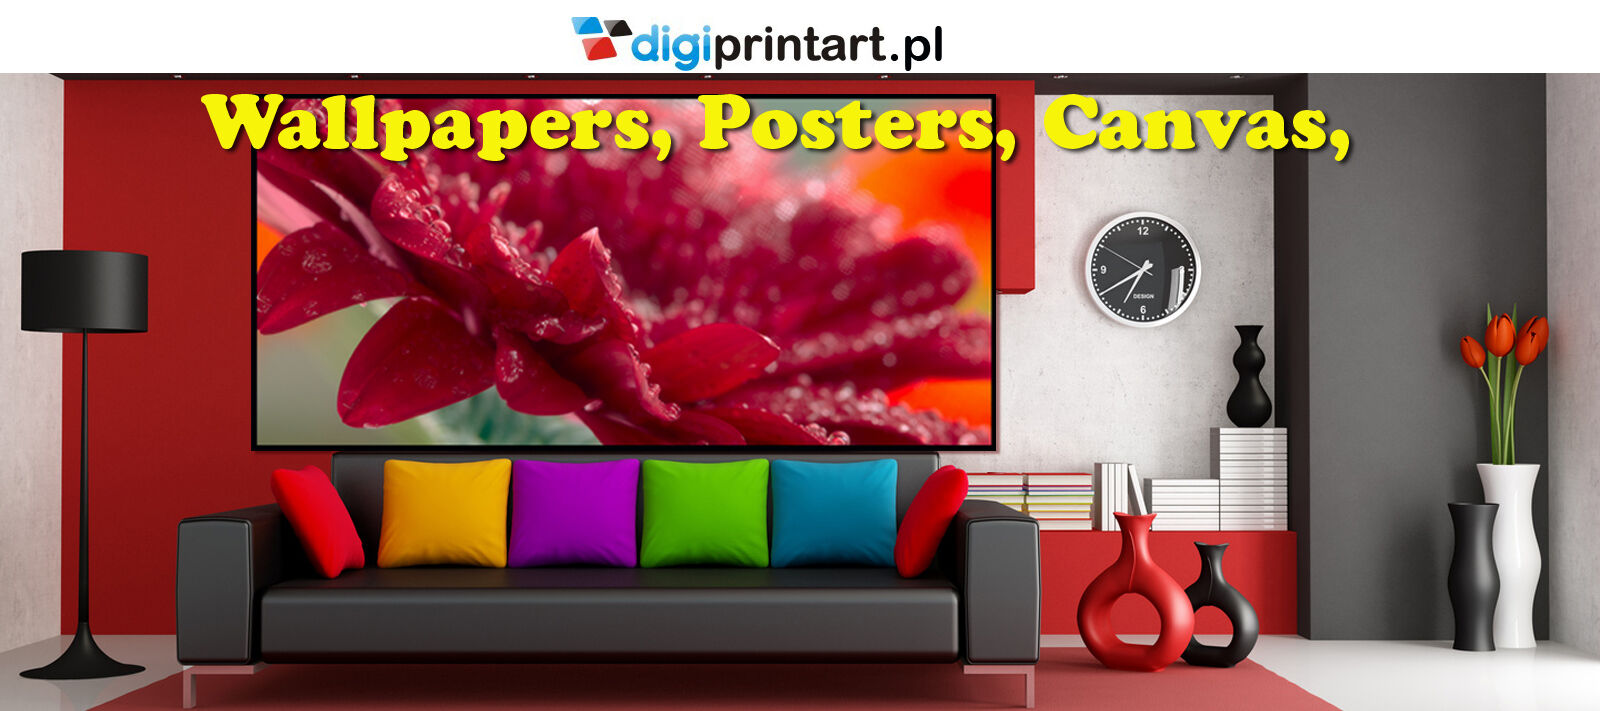 digiprintshop